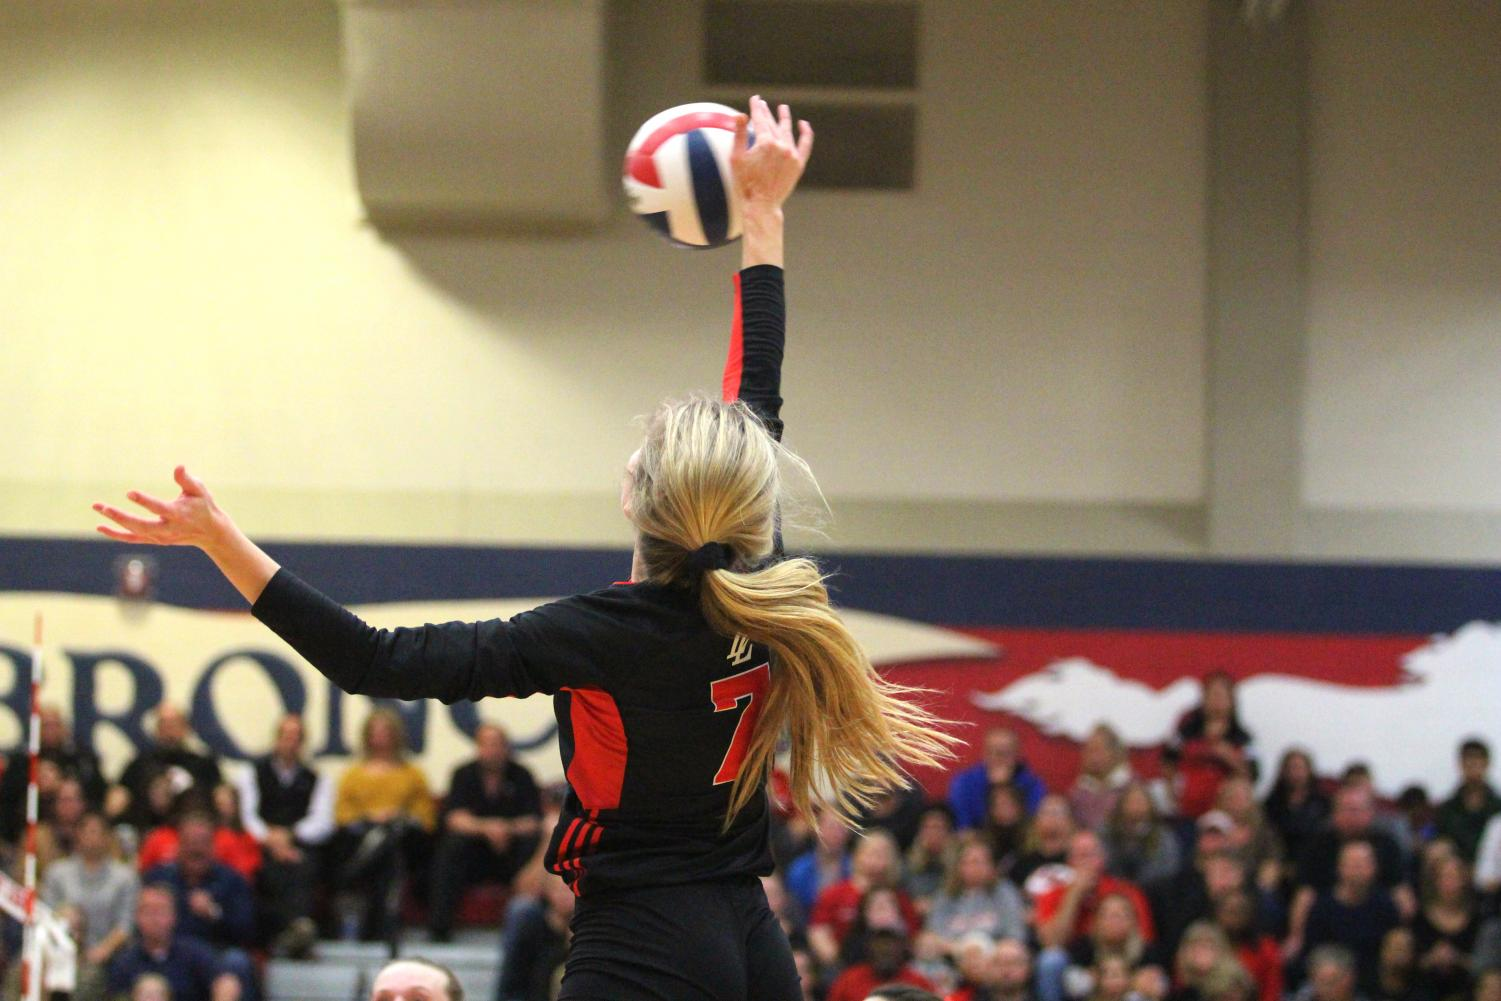 Junior Ellie Jonke hits the ball from the outside hitter position to Liberty's Libero, scoring a point for Lovejoy.